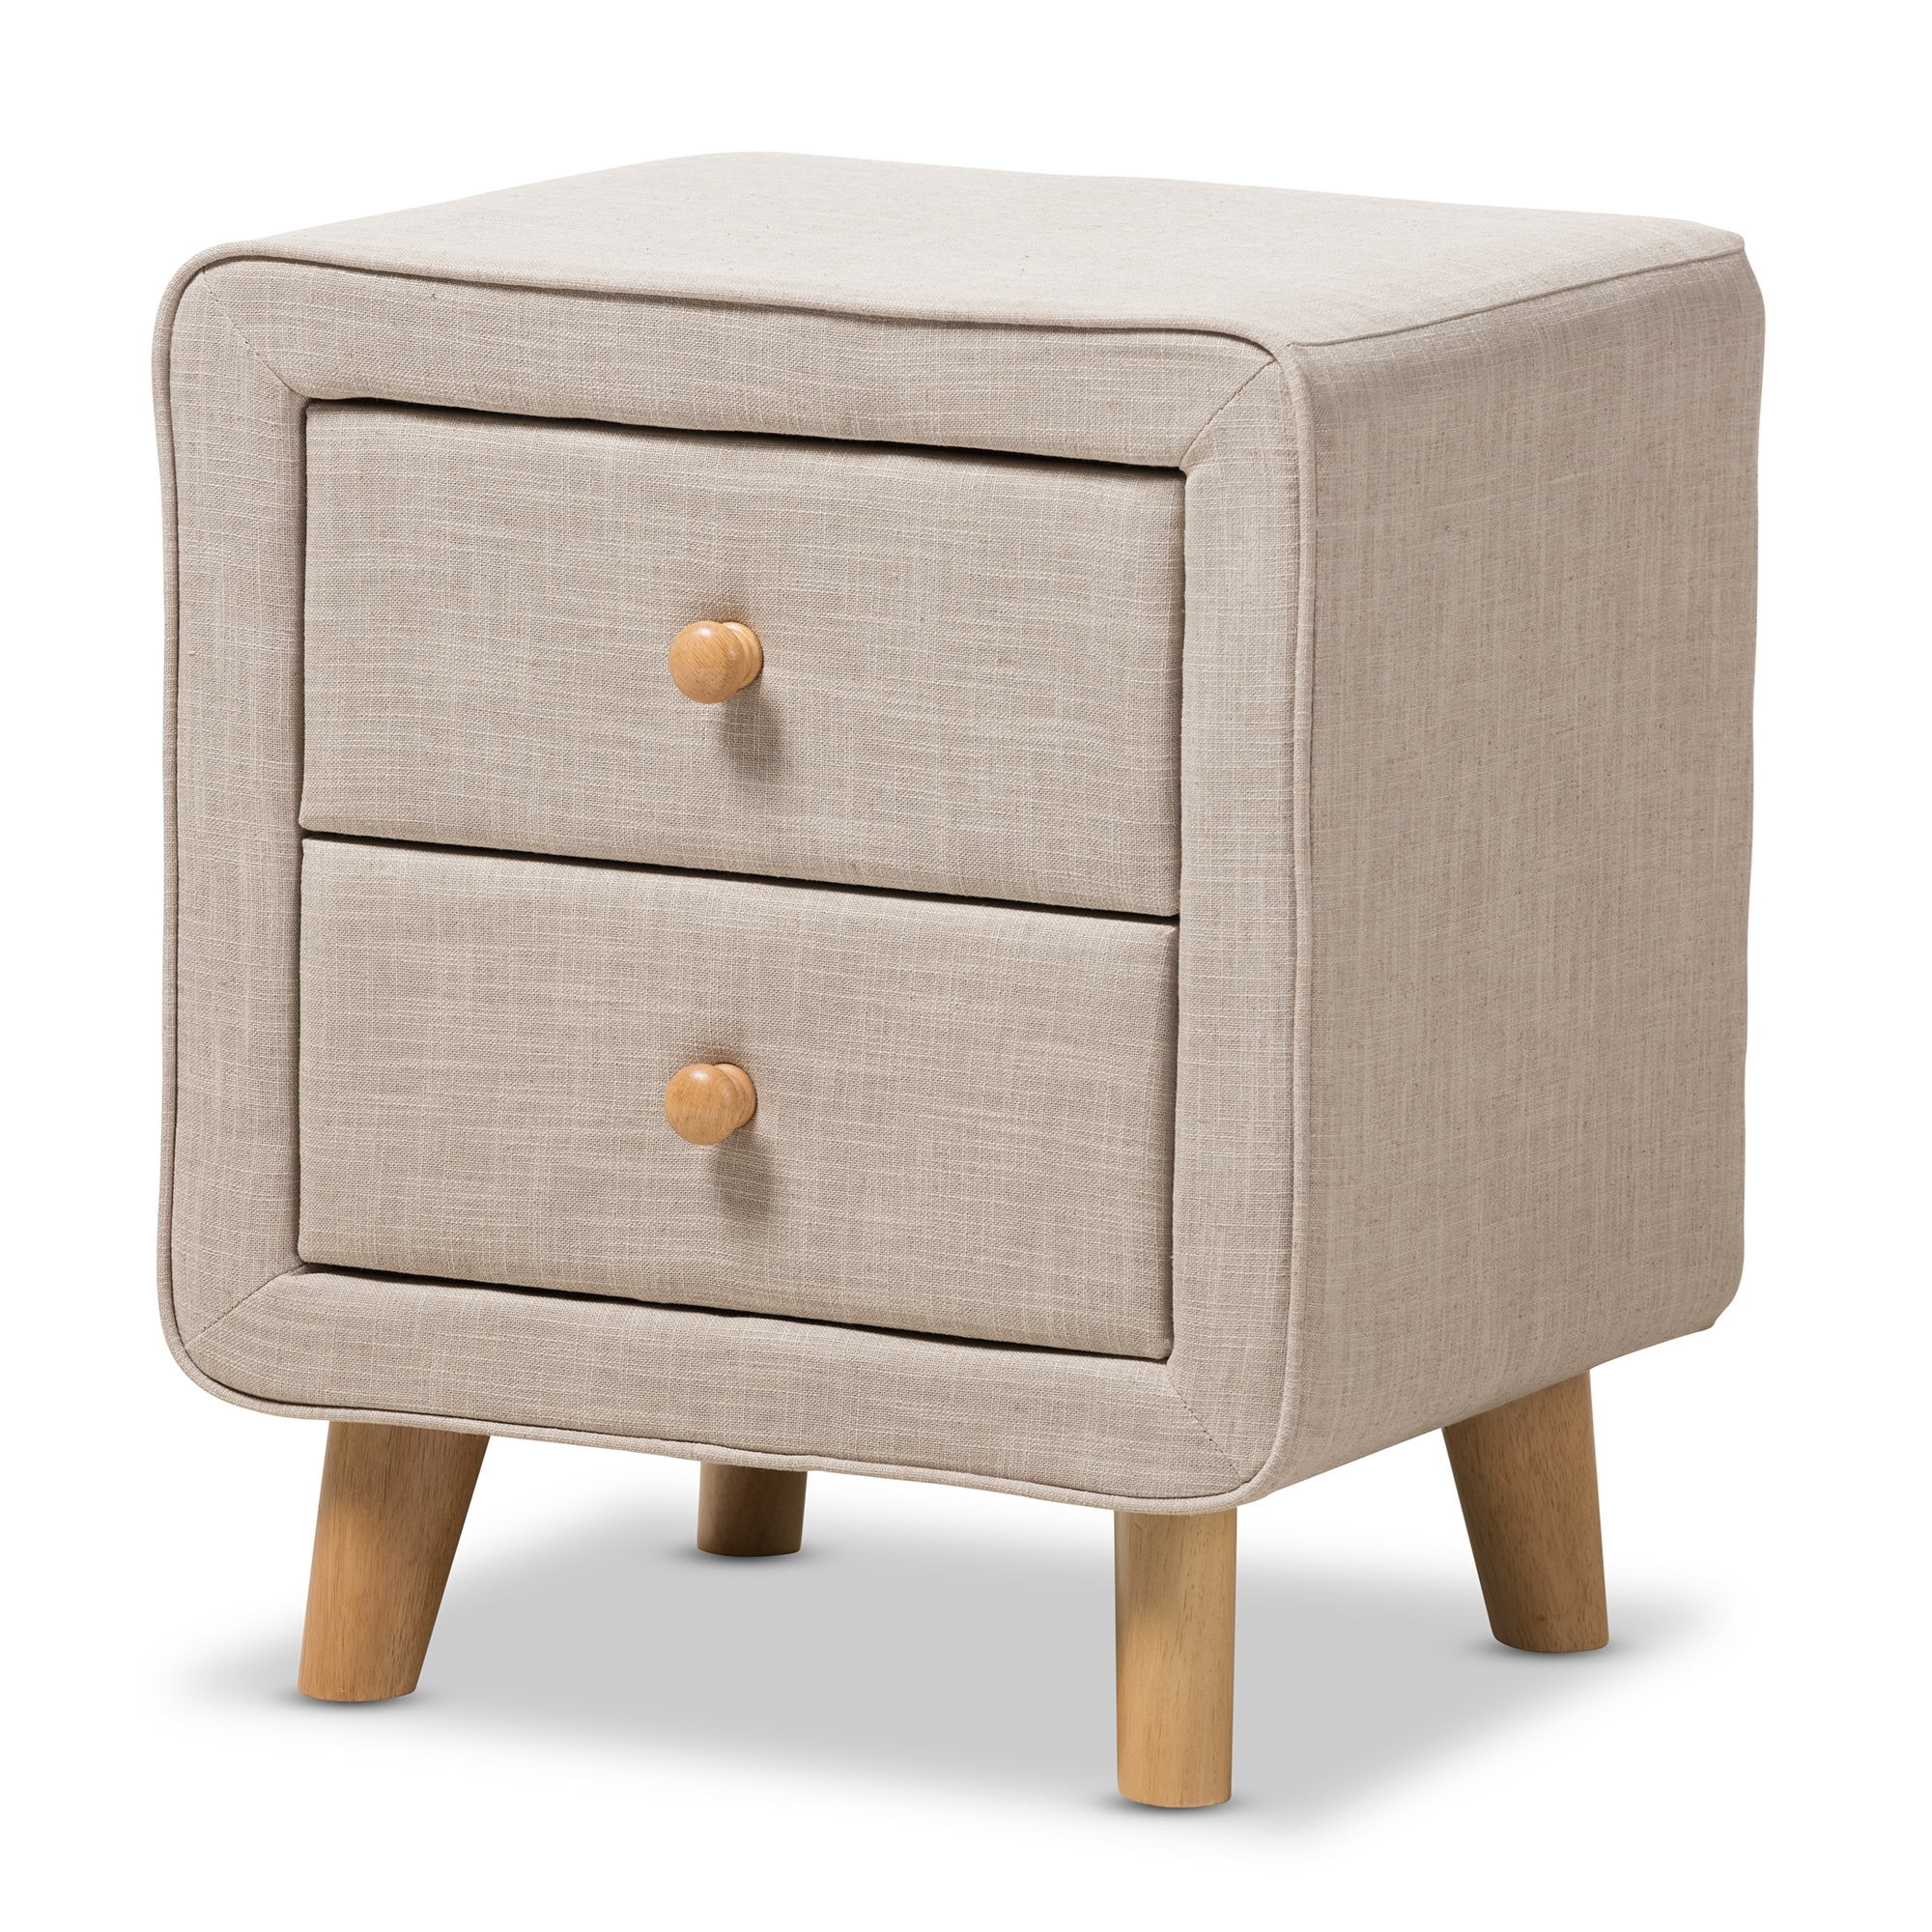 Wholesale Night Stands | Wholesale Bedroom Furniture | Wholesale Furniture